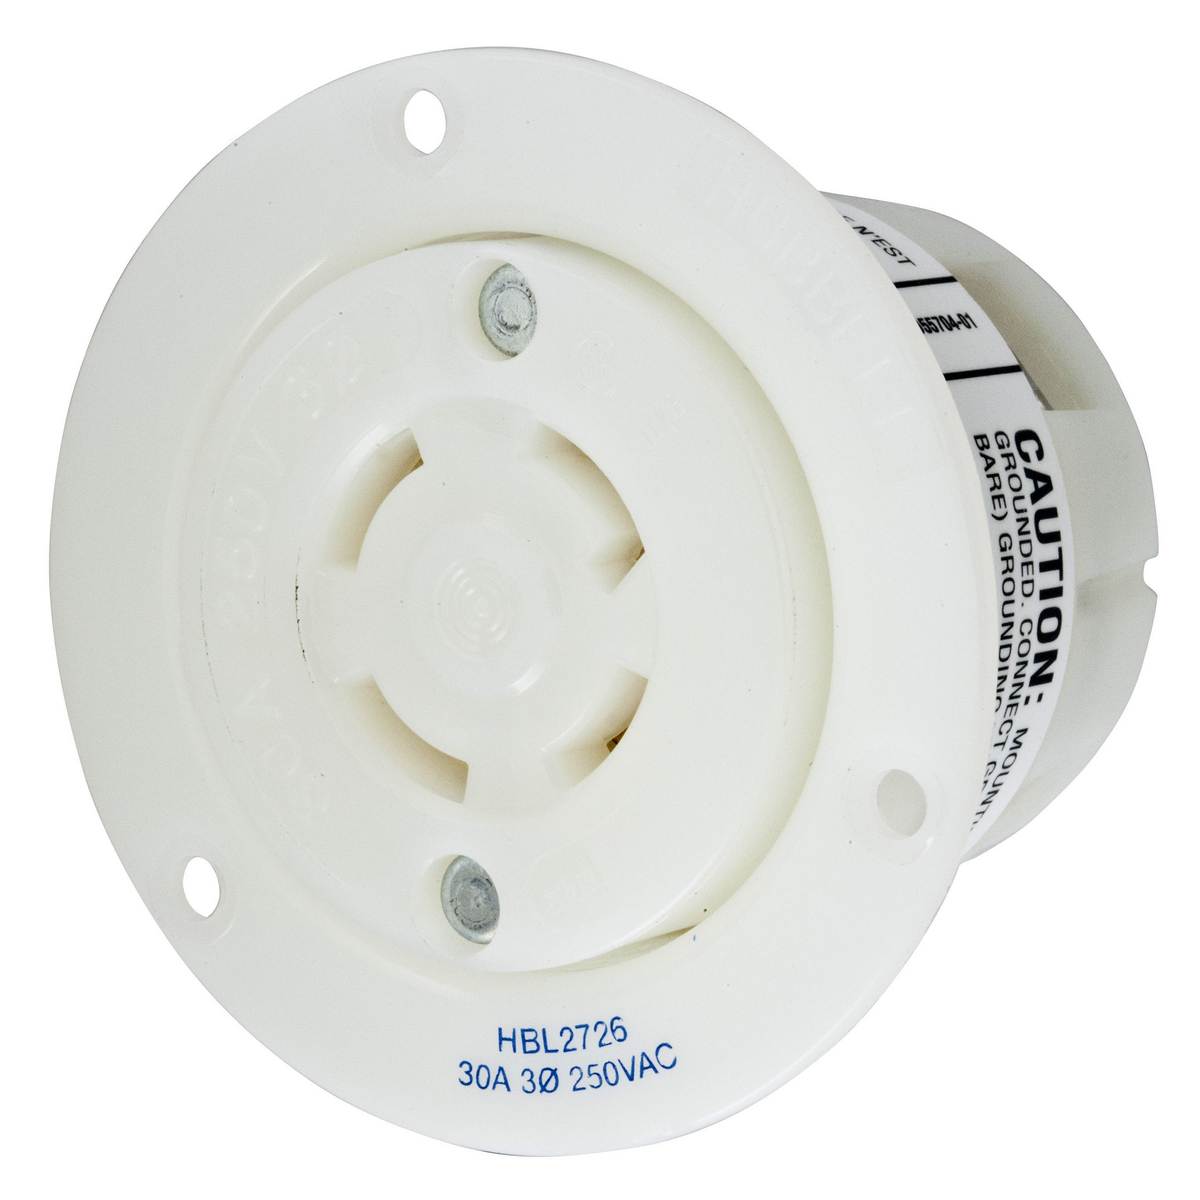 Hubbell HBL2726 30 Amp 250 Volt 3-Pole 4-Wire NEMA L15-30R White Locking Flanged Receptacle